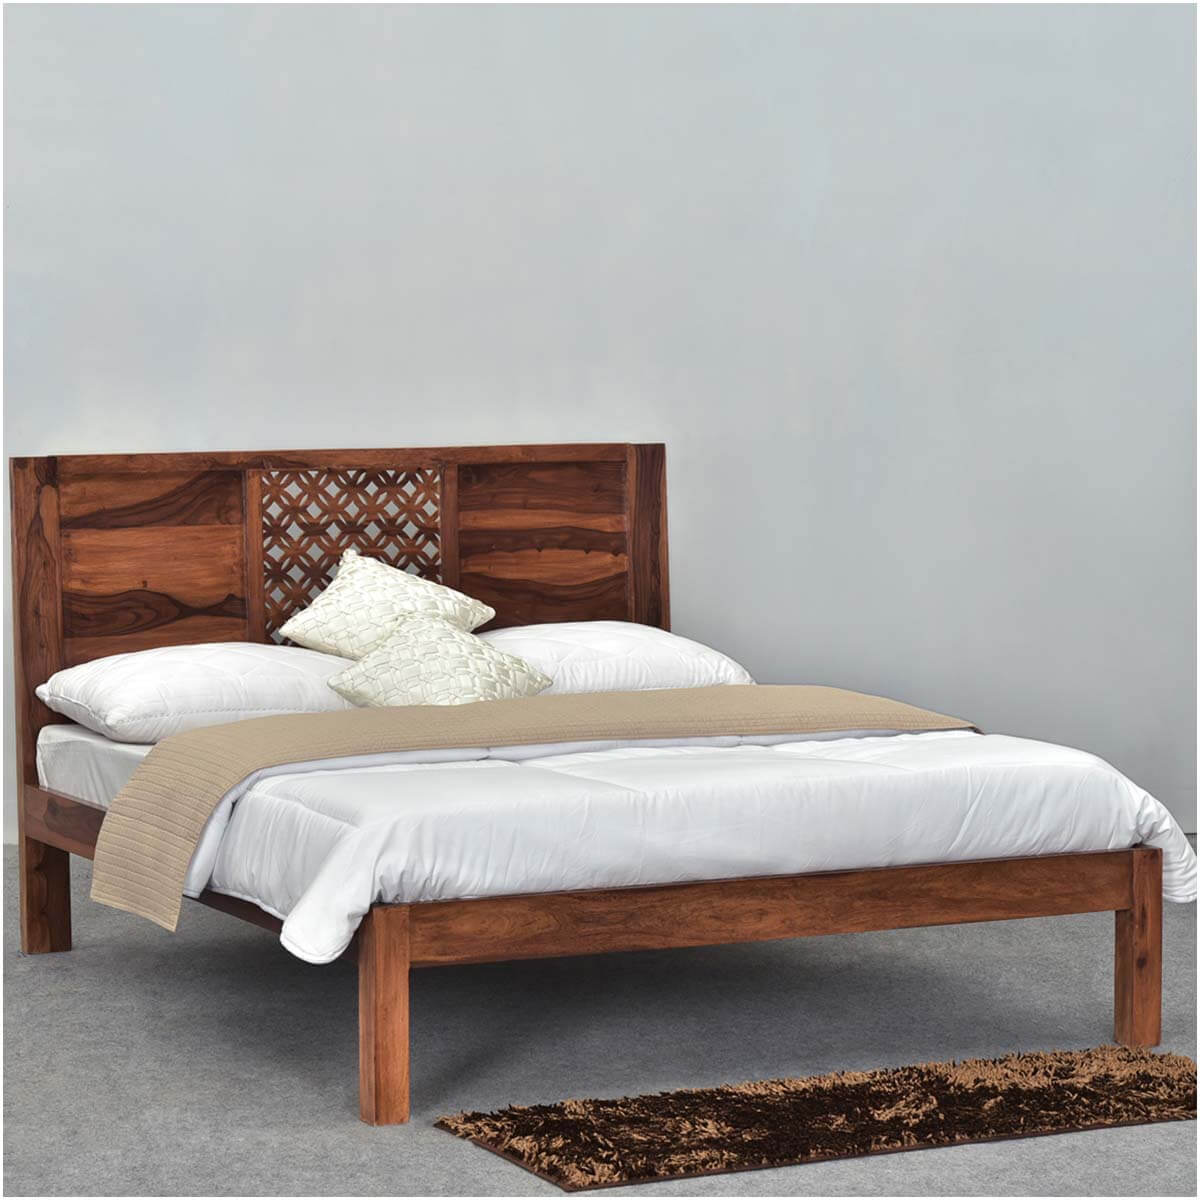 diamond lattice solid wood rustic platform bed frame w headboard. Black Bedroom Furniture Sets. Home Design Ideas